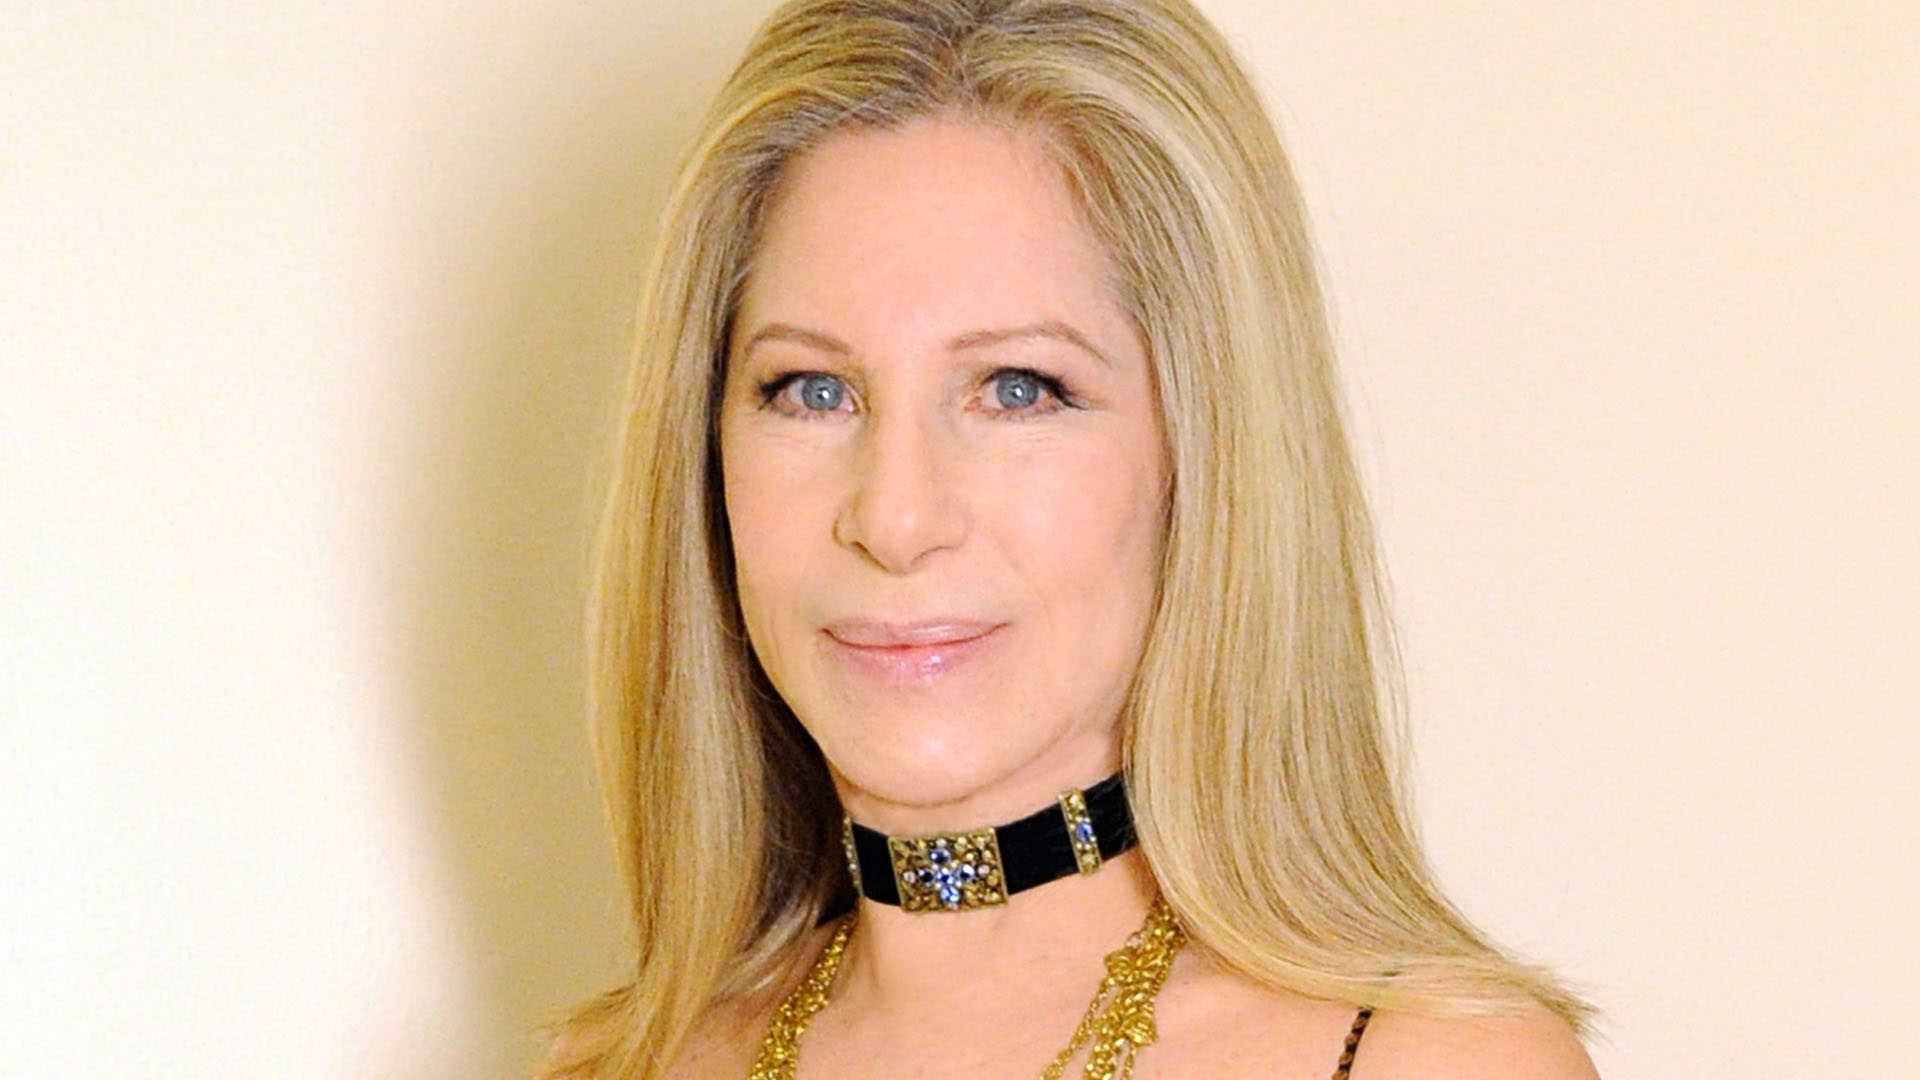 Barbra Streisand Wallpapers Images Photos Pictures Backgrounds